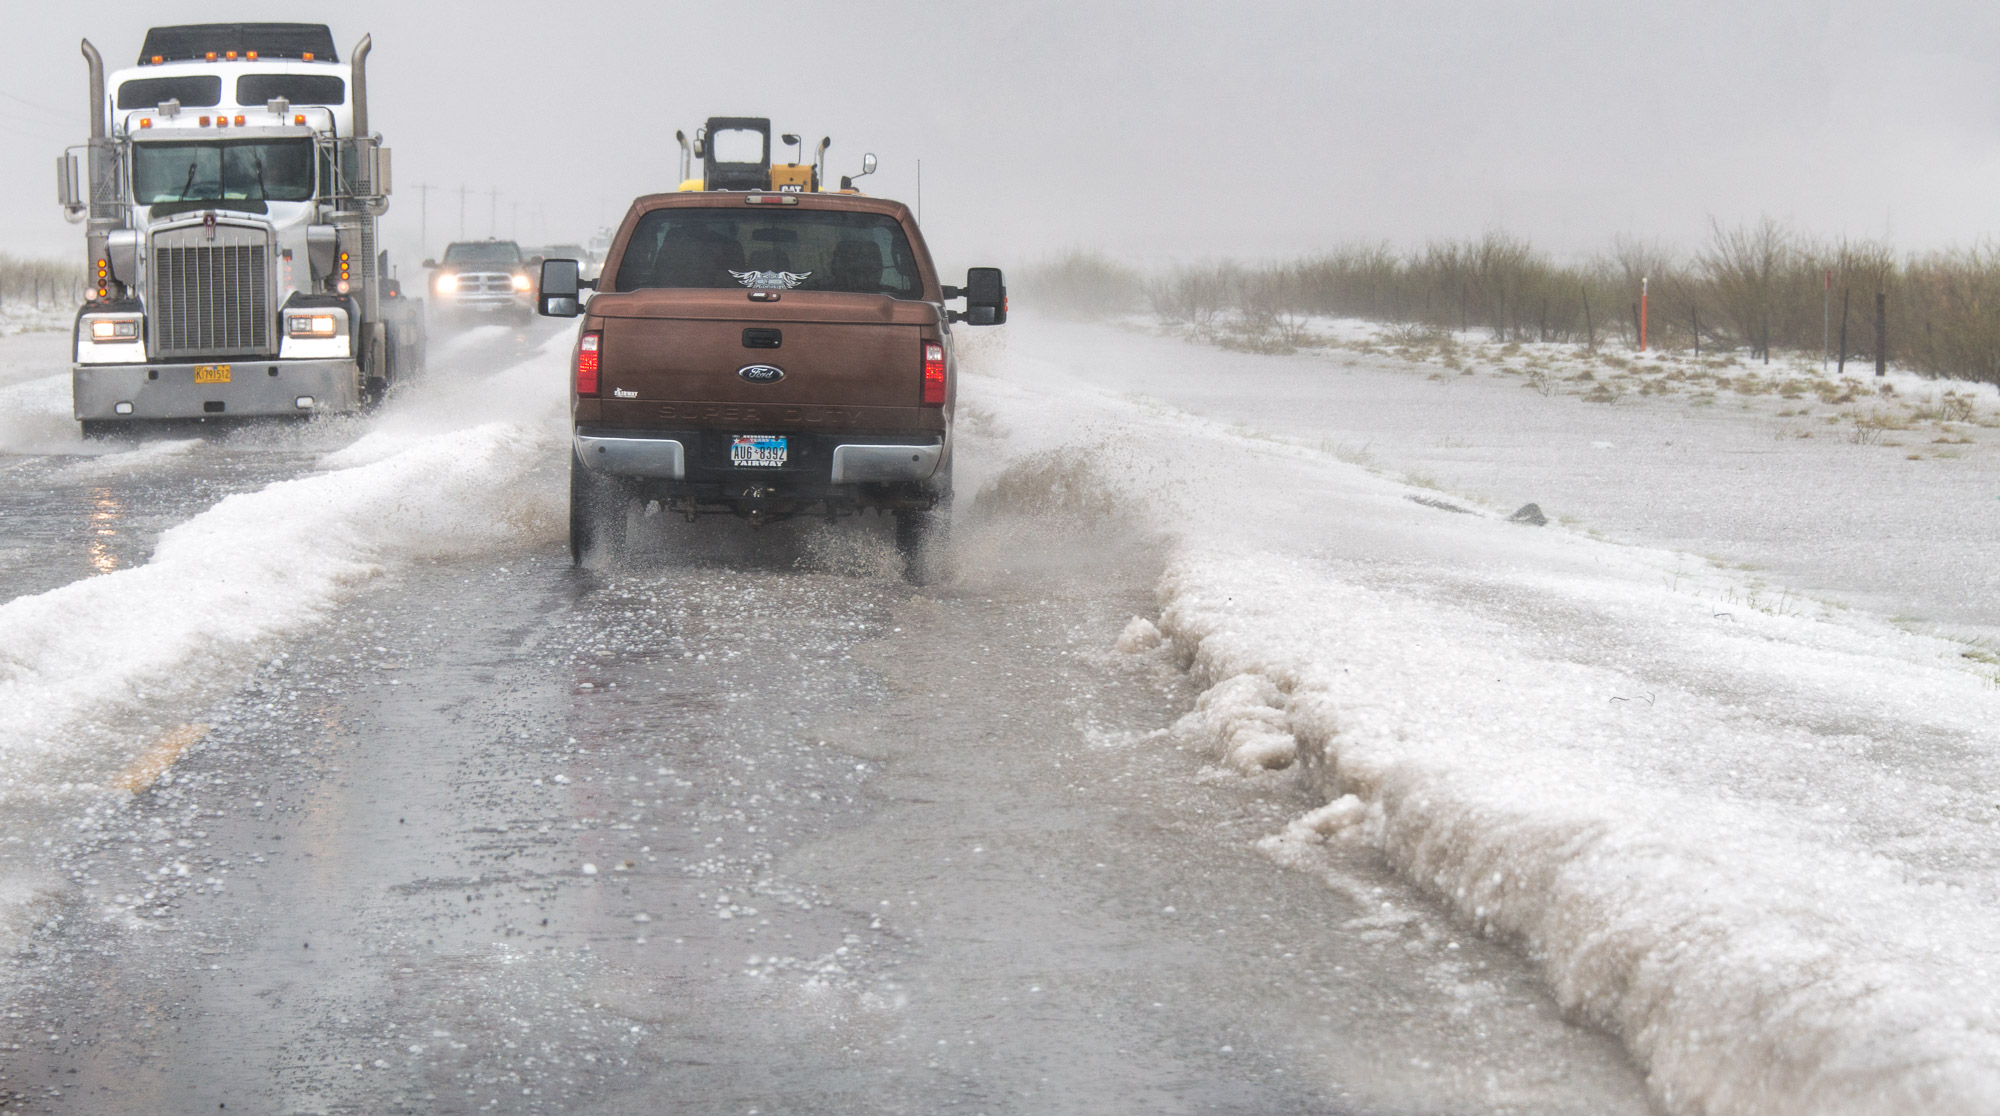 Hail drifts on road - Pecos, Texas